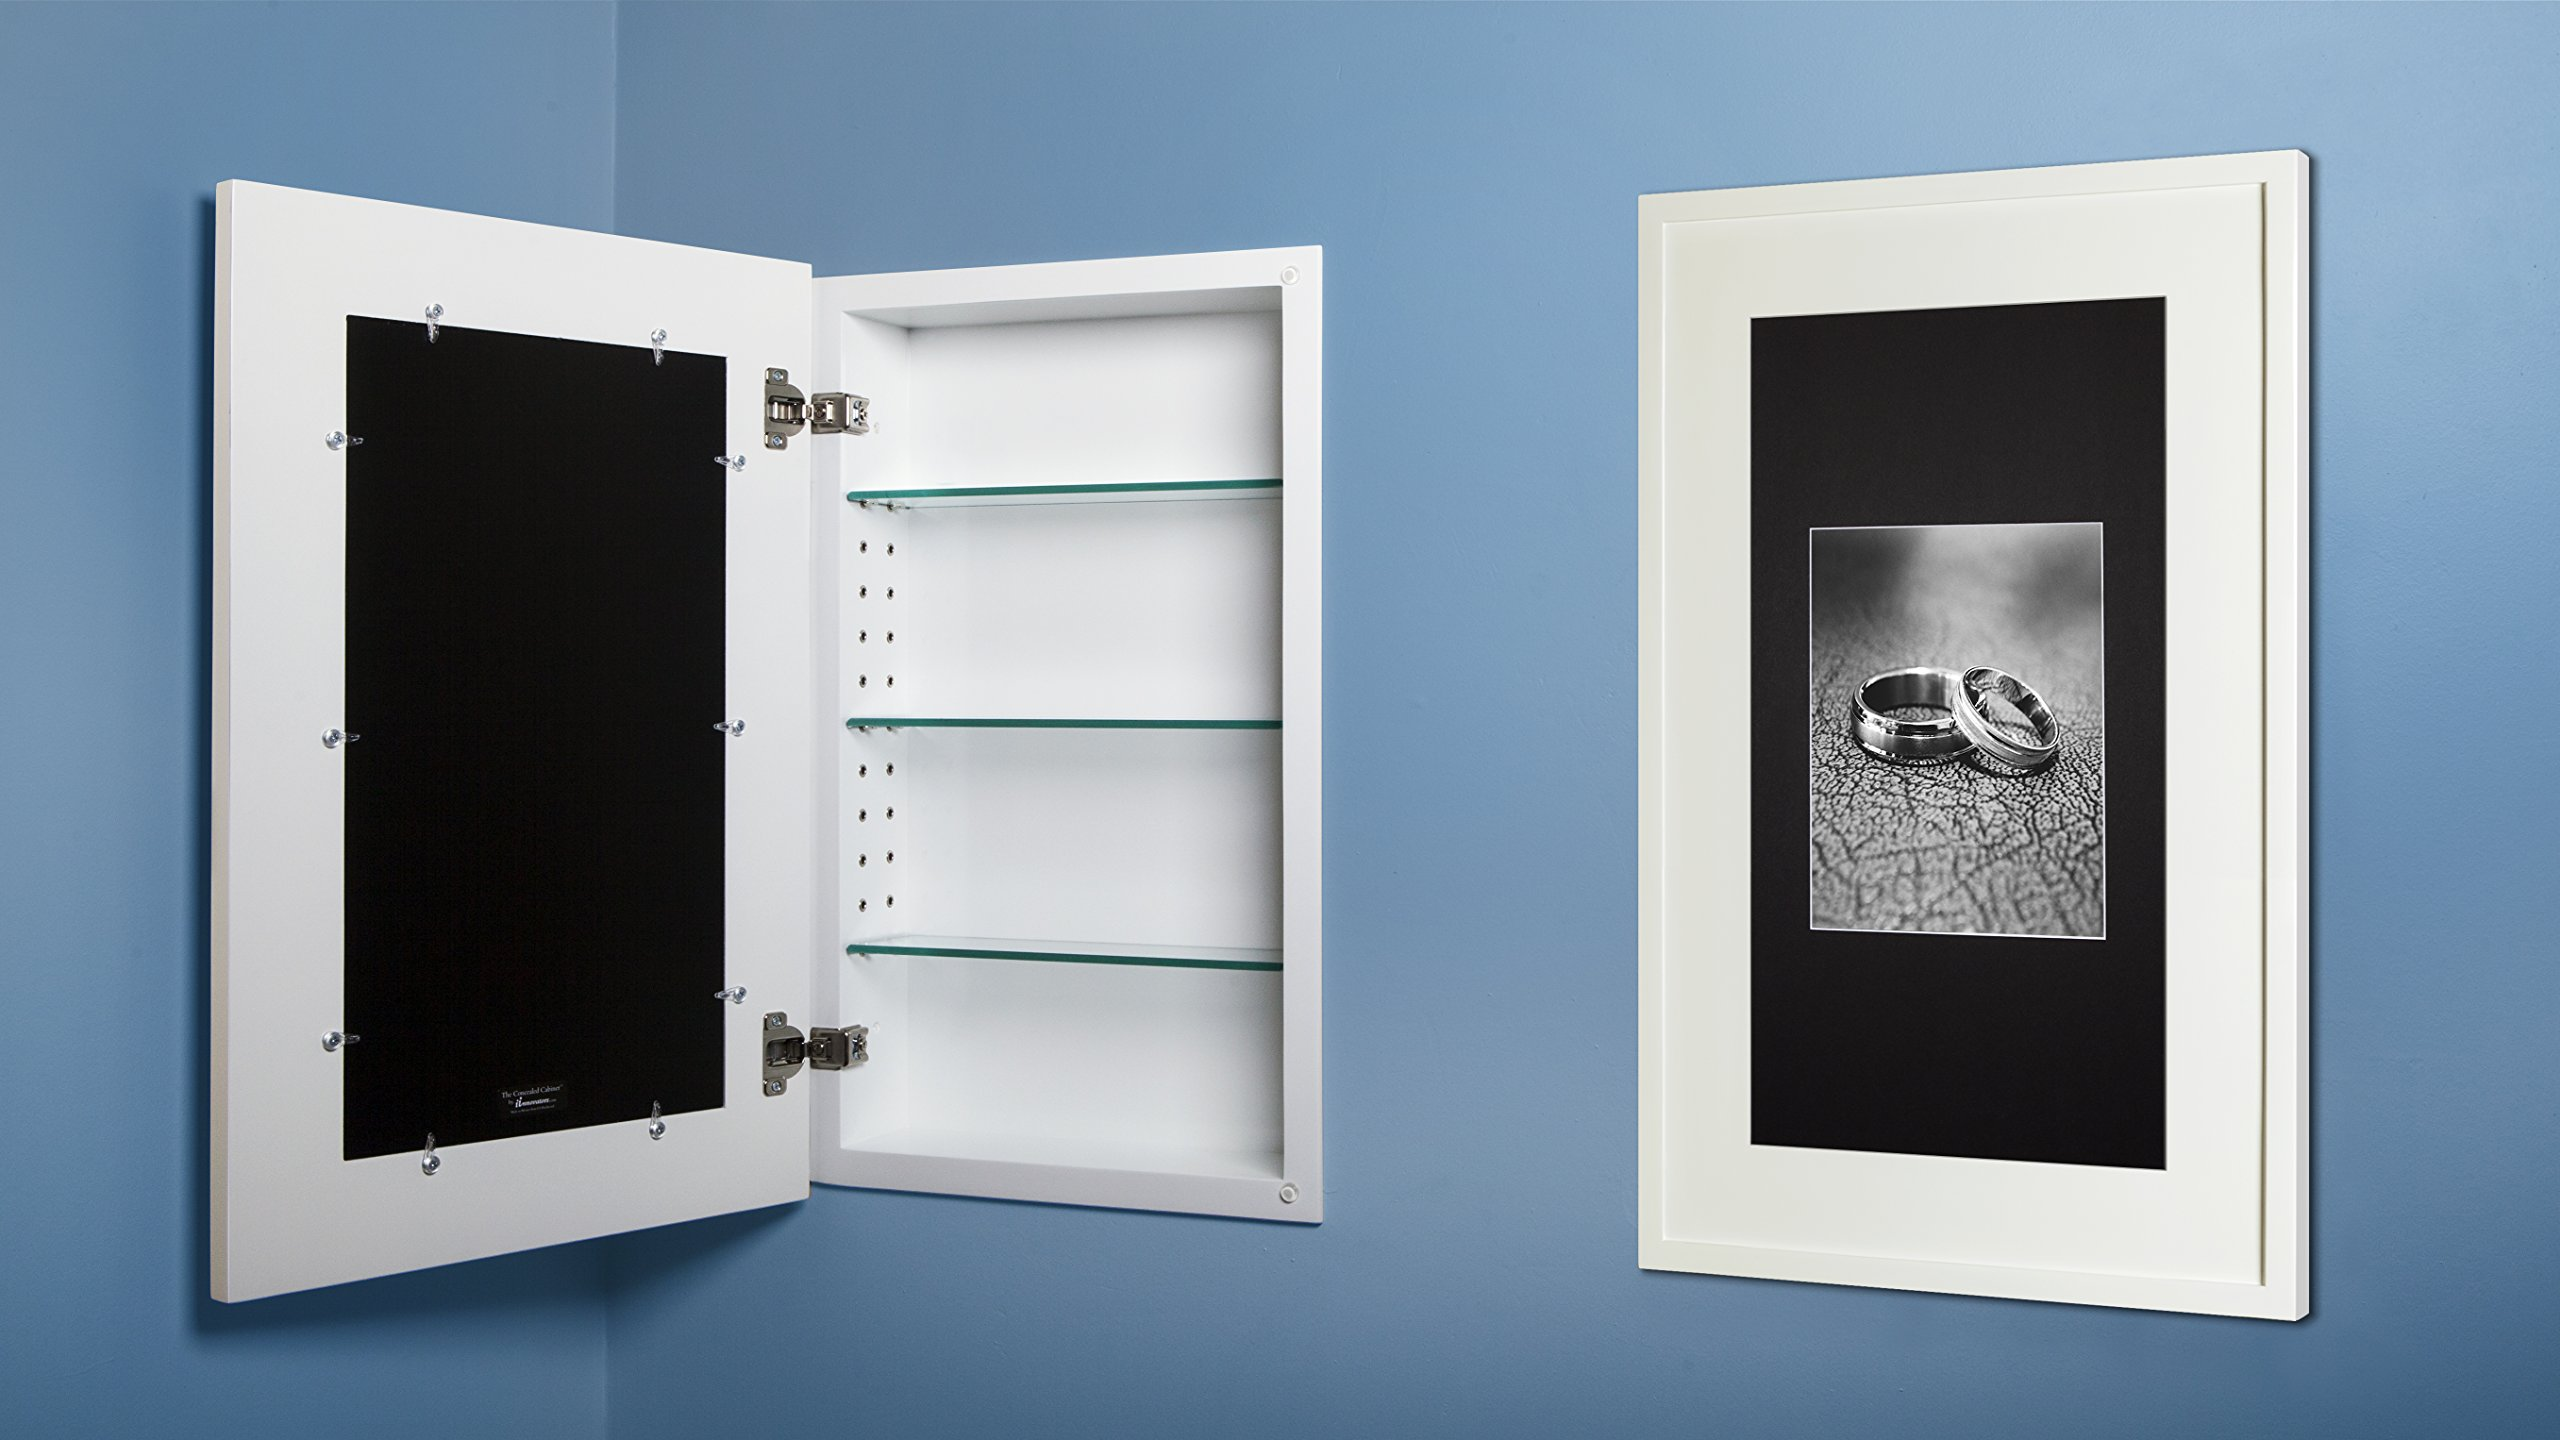 14x24 White Concealed Medicine Cabinet (Extra Large), a Recessed Mirrorless Medicine Cabinet with a Picture Frame Door (available in multiple colors & styles) by The Concealed Cabinet by iinnovators